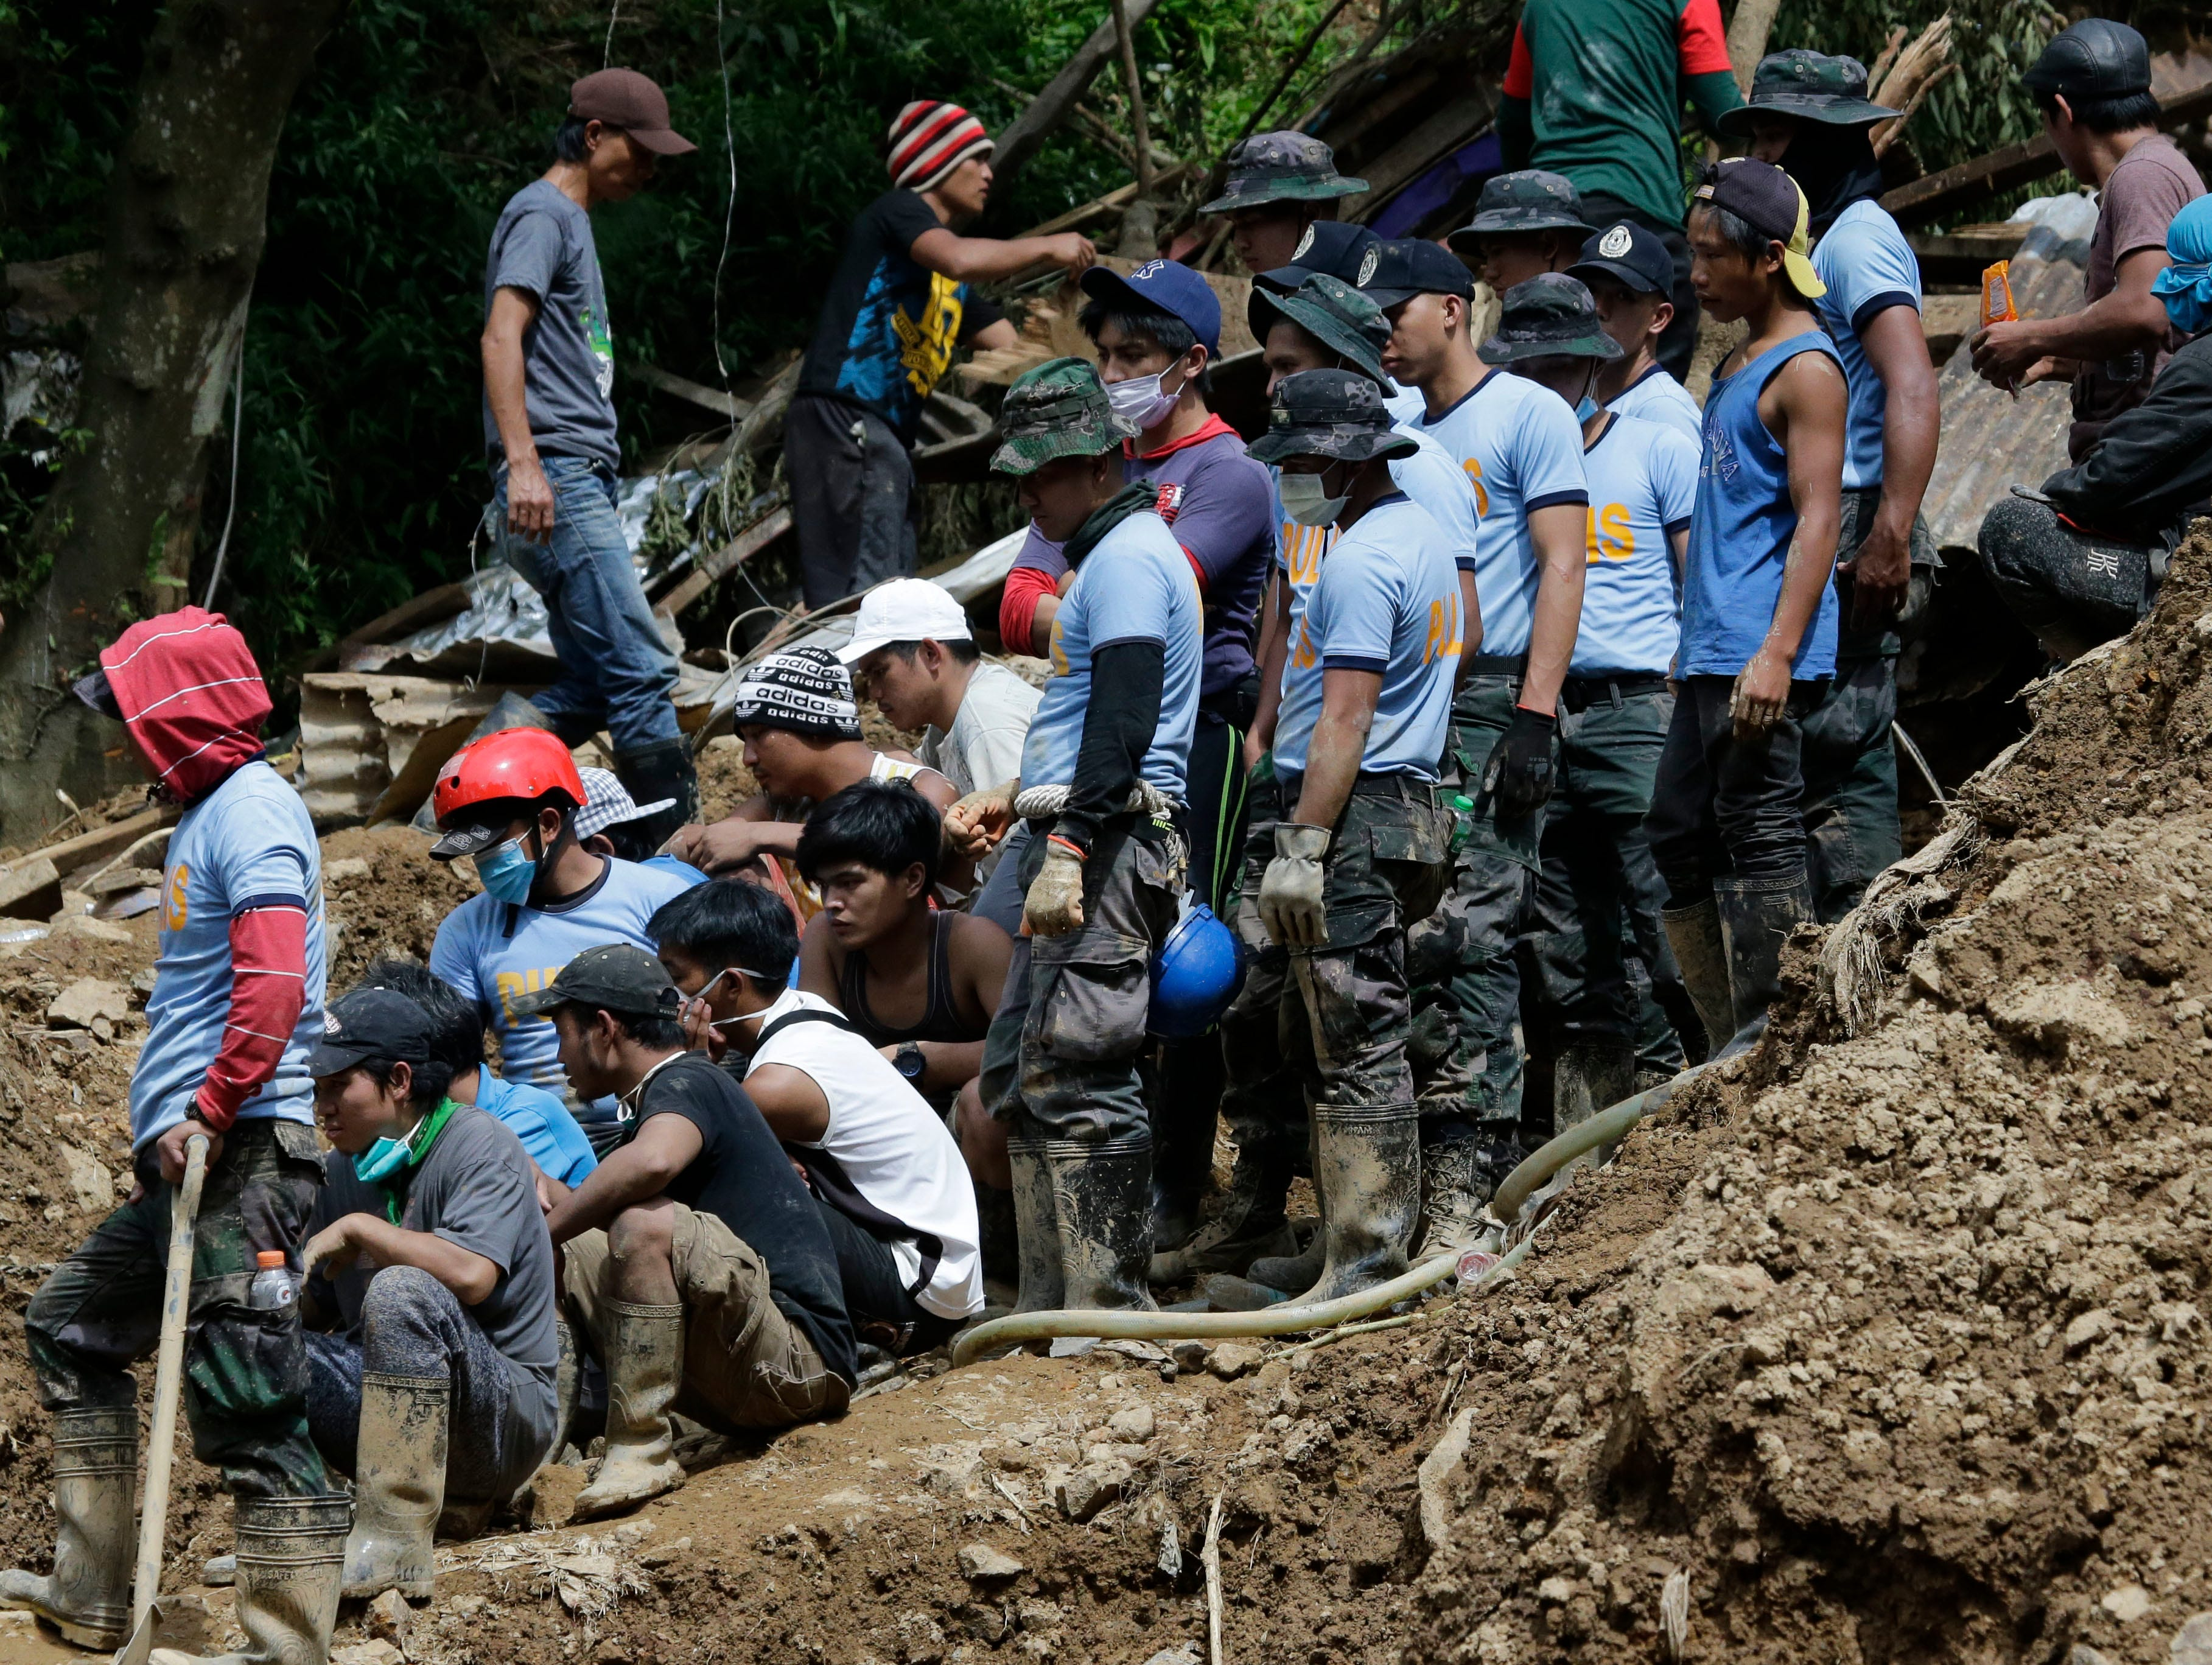 Rescuers watch a body as its recovered where a landslide was set off by Typhoon Mangkhut as it lashed across Itogon, Benguet province, northern Philippines, Tuesday, Sept. 18, 2018. Dozens of people believed buried in the landslide probably did not survive, the mayor of Itogon said Monday, although rescuers kept digging through mud and debris covering a chapel where they had taken shelter.